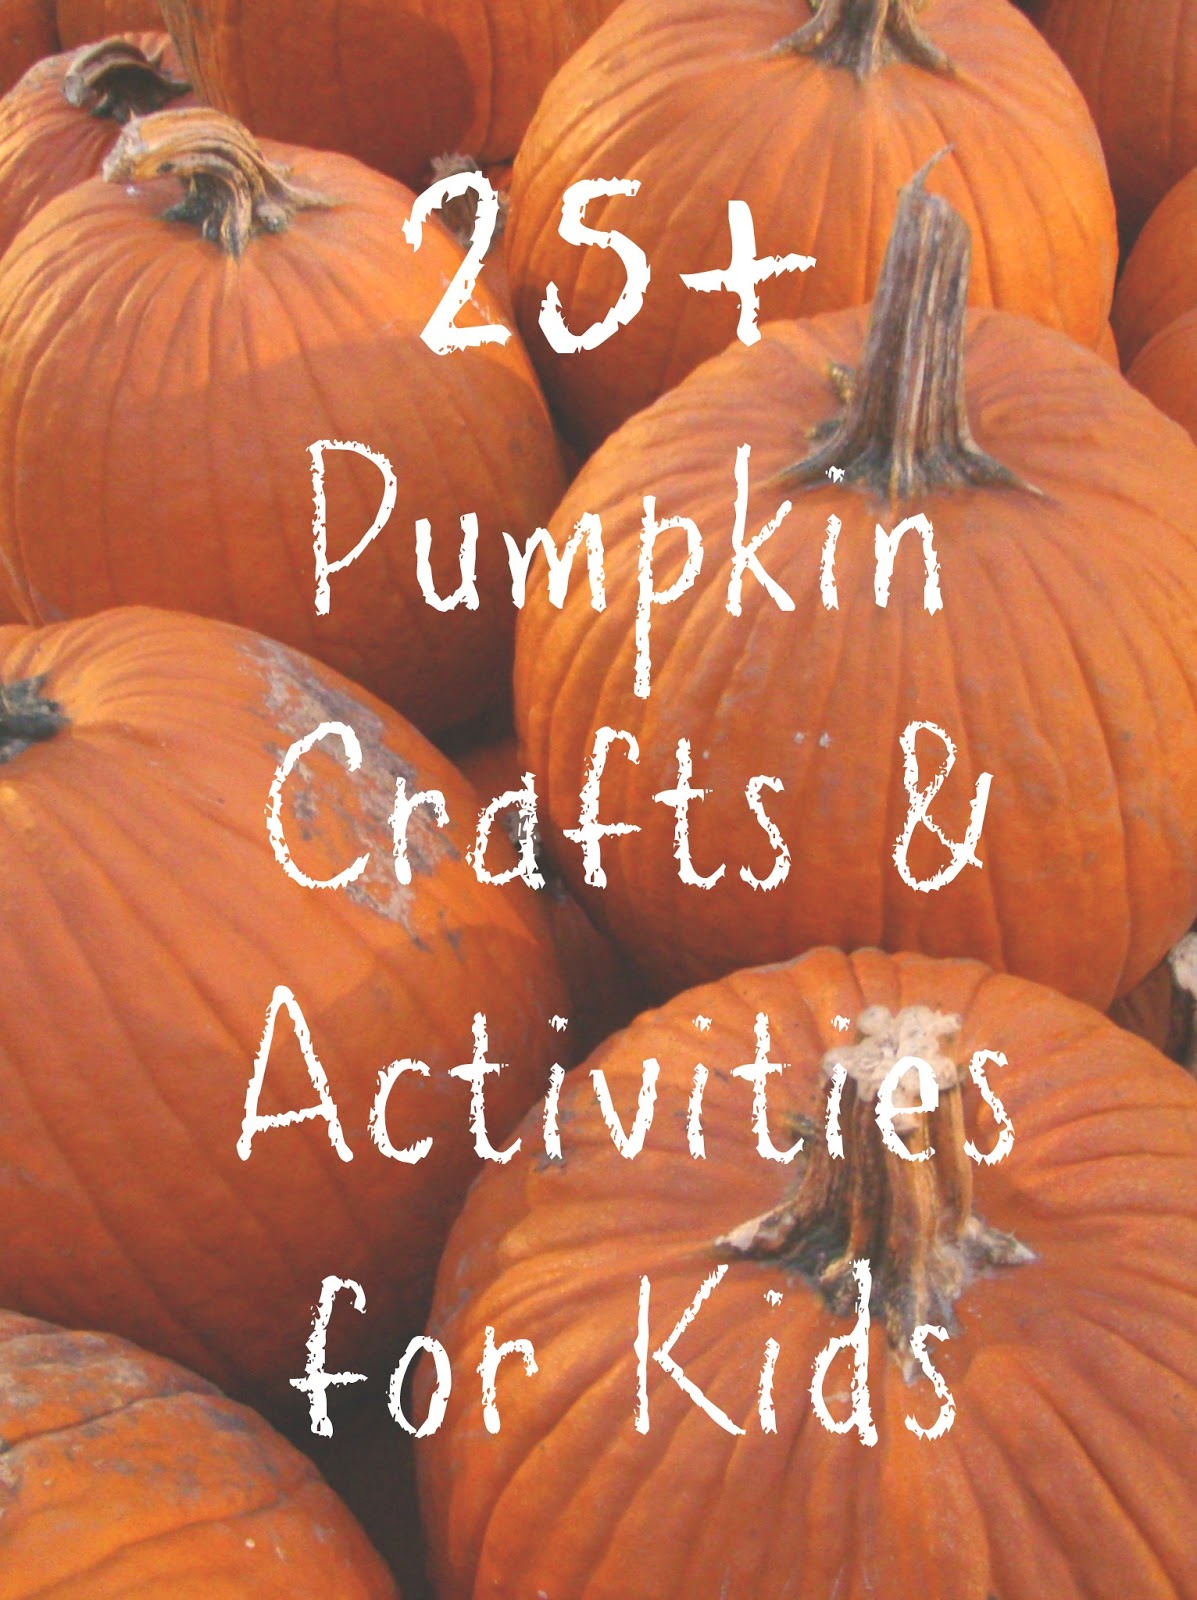 It's just a picture of Versatile Pumpkins Crafts for Kids